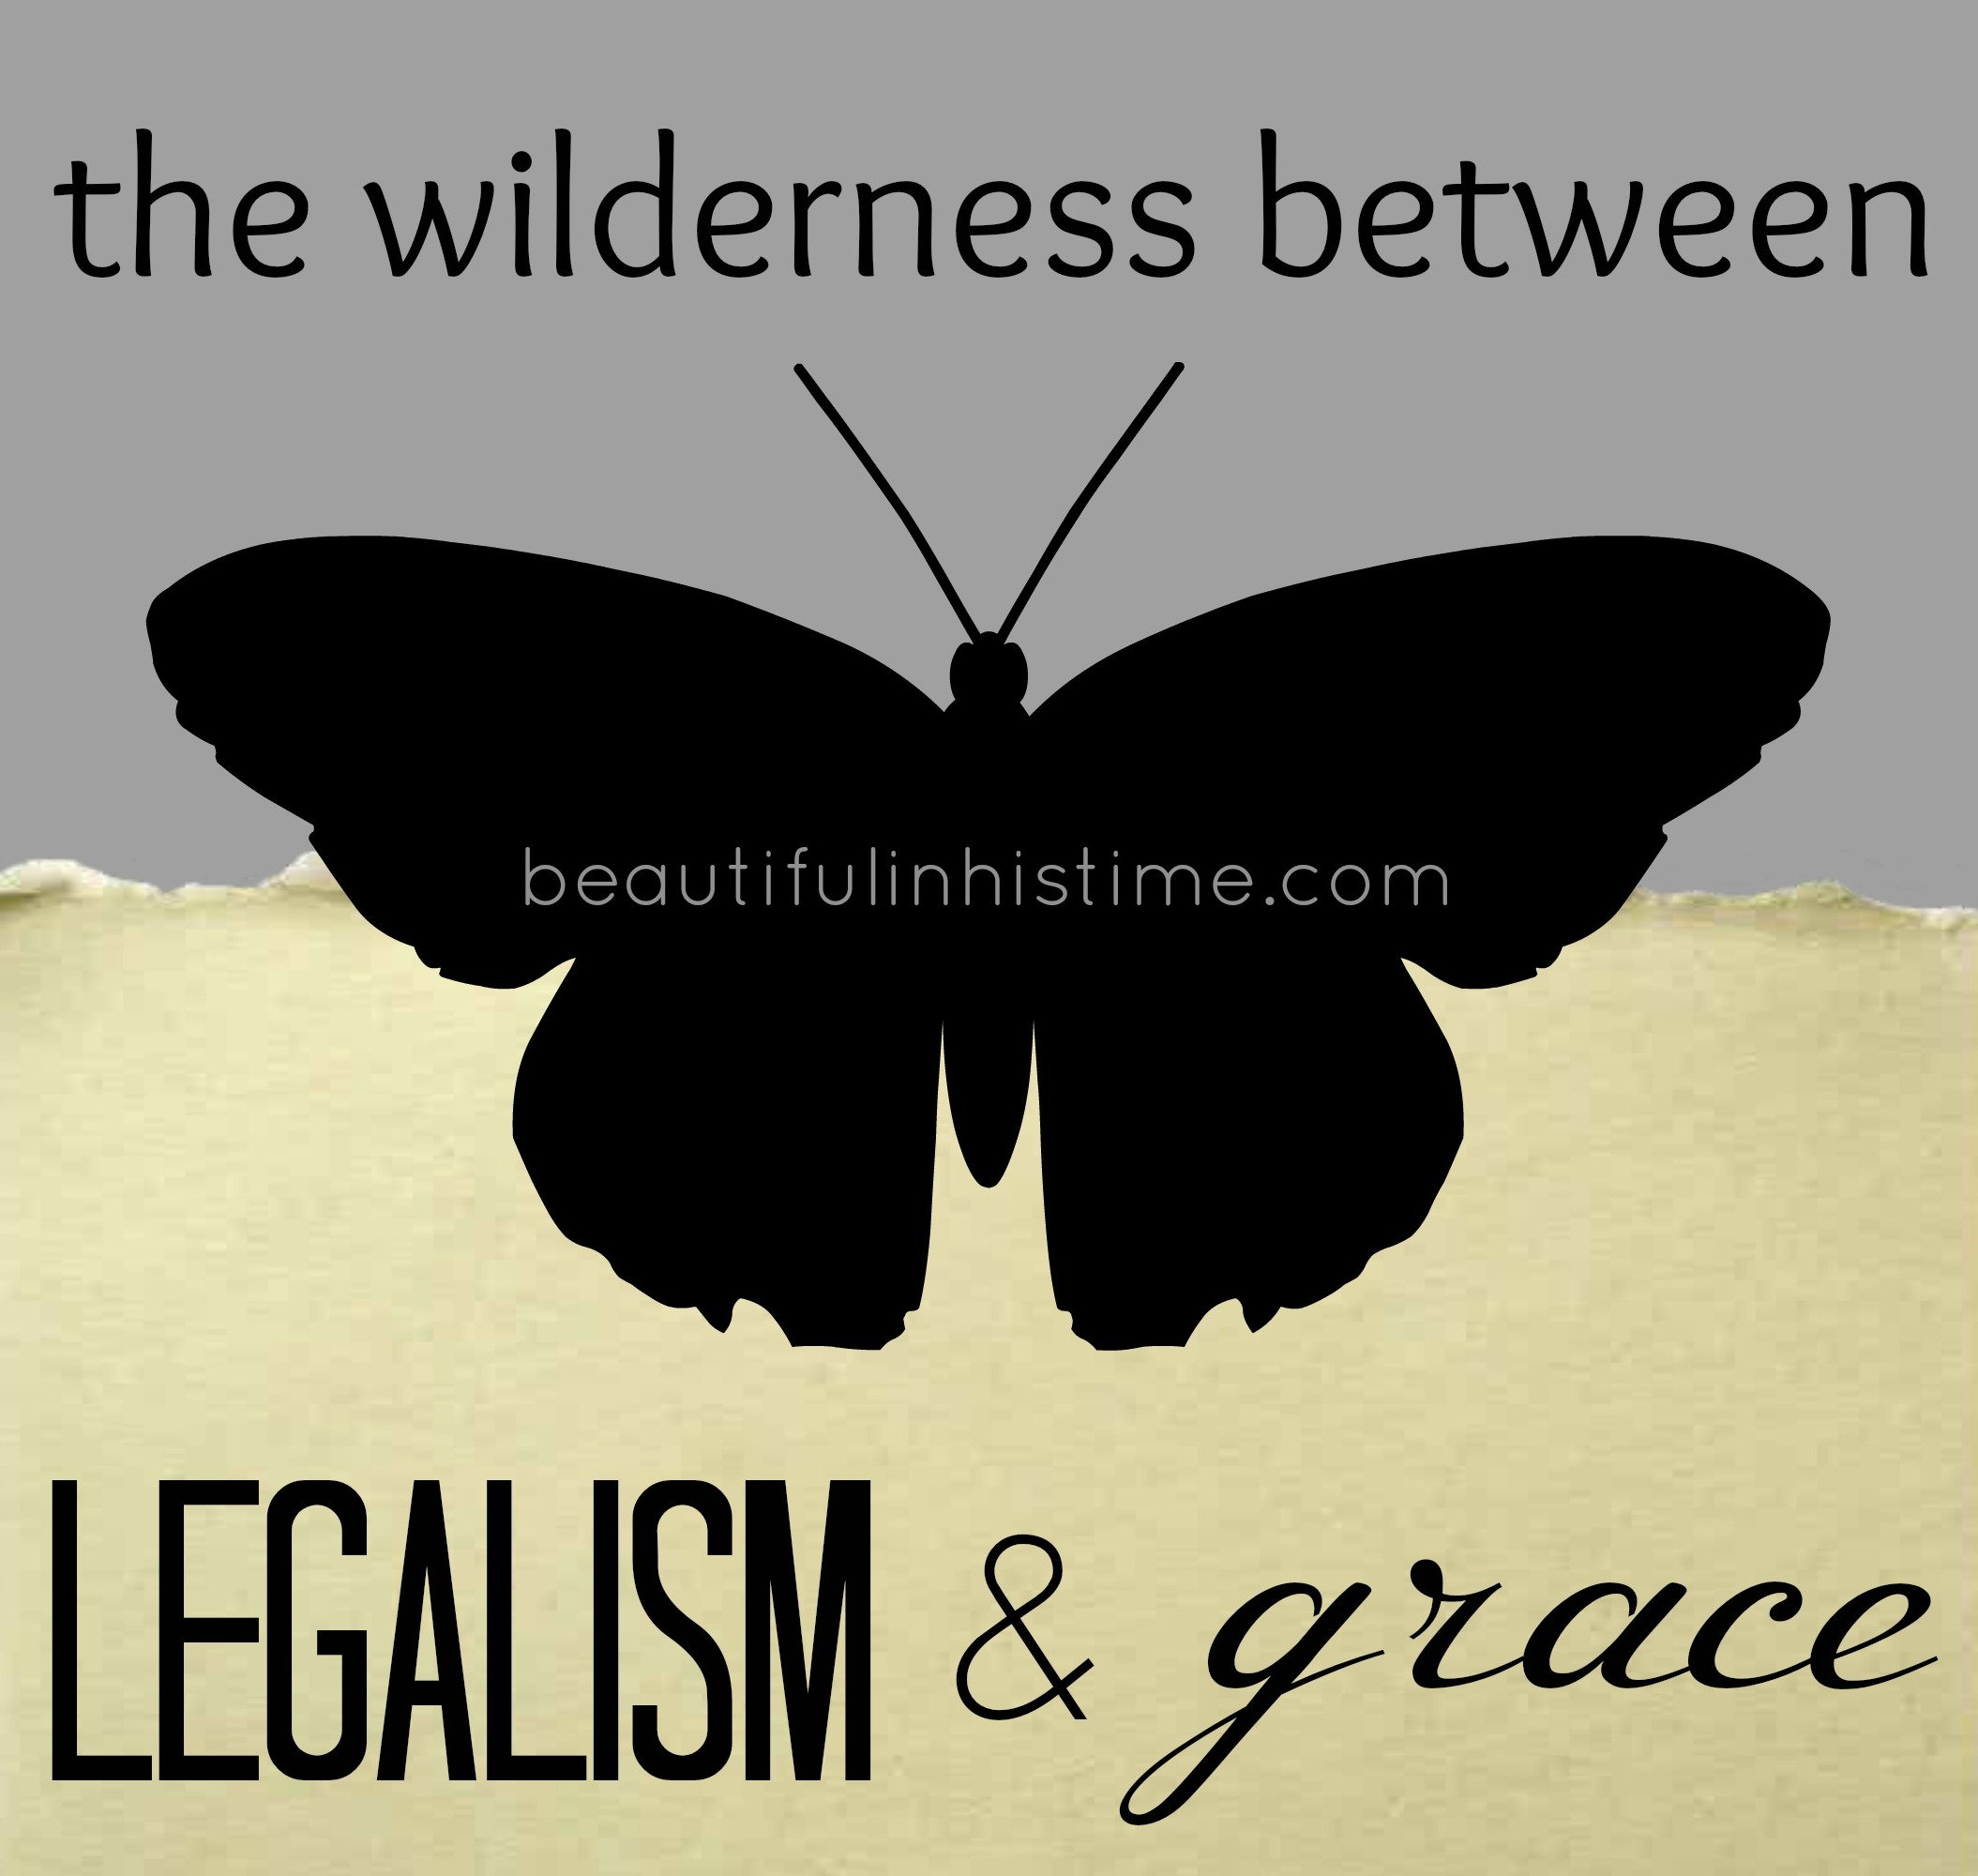 the wilderness between #legalism and #grace (a blog series)